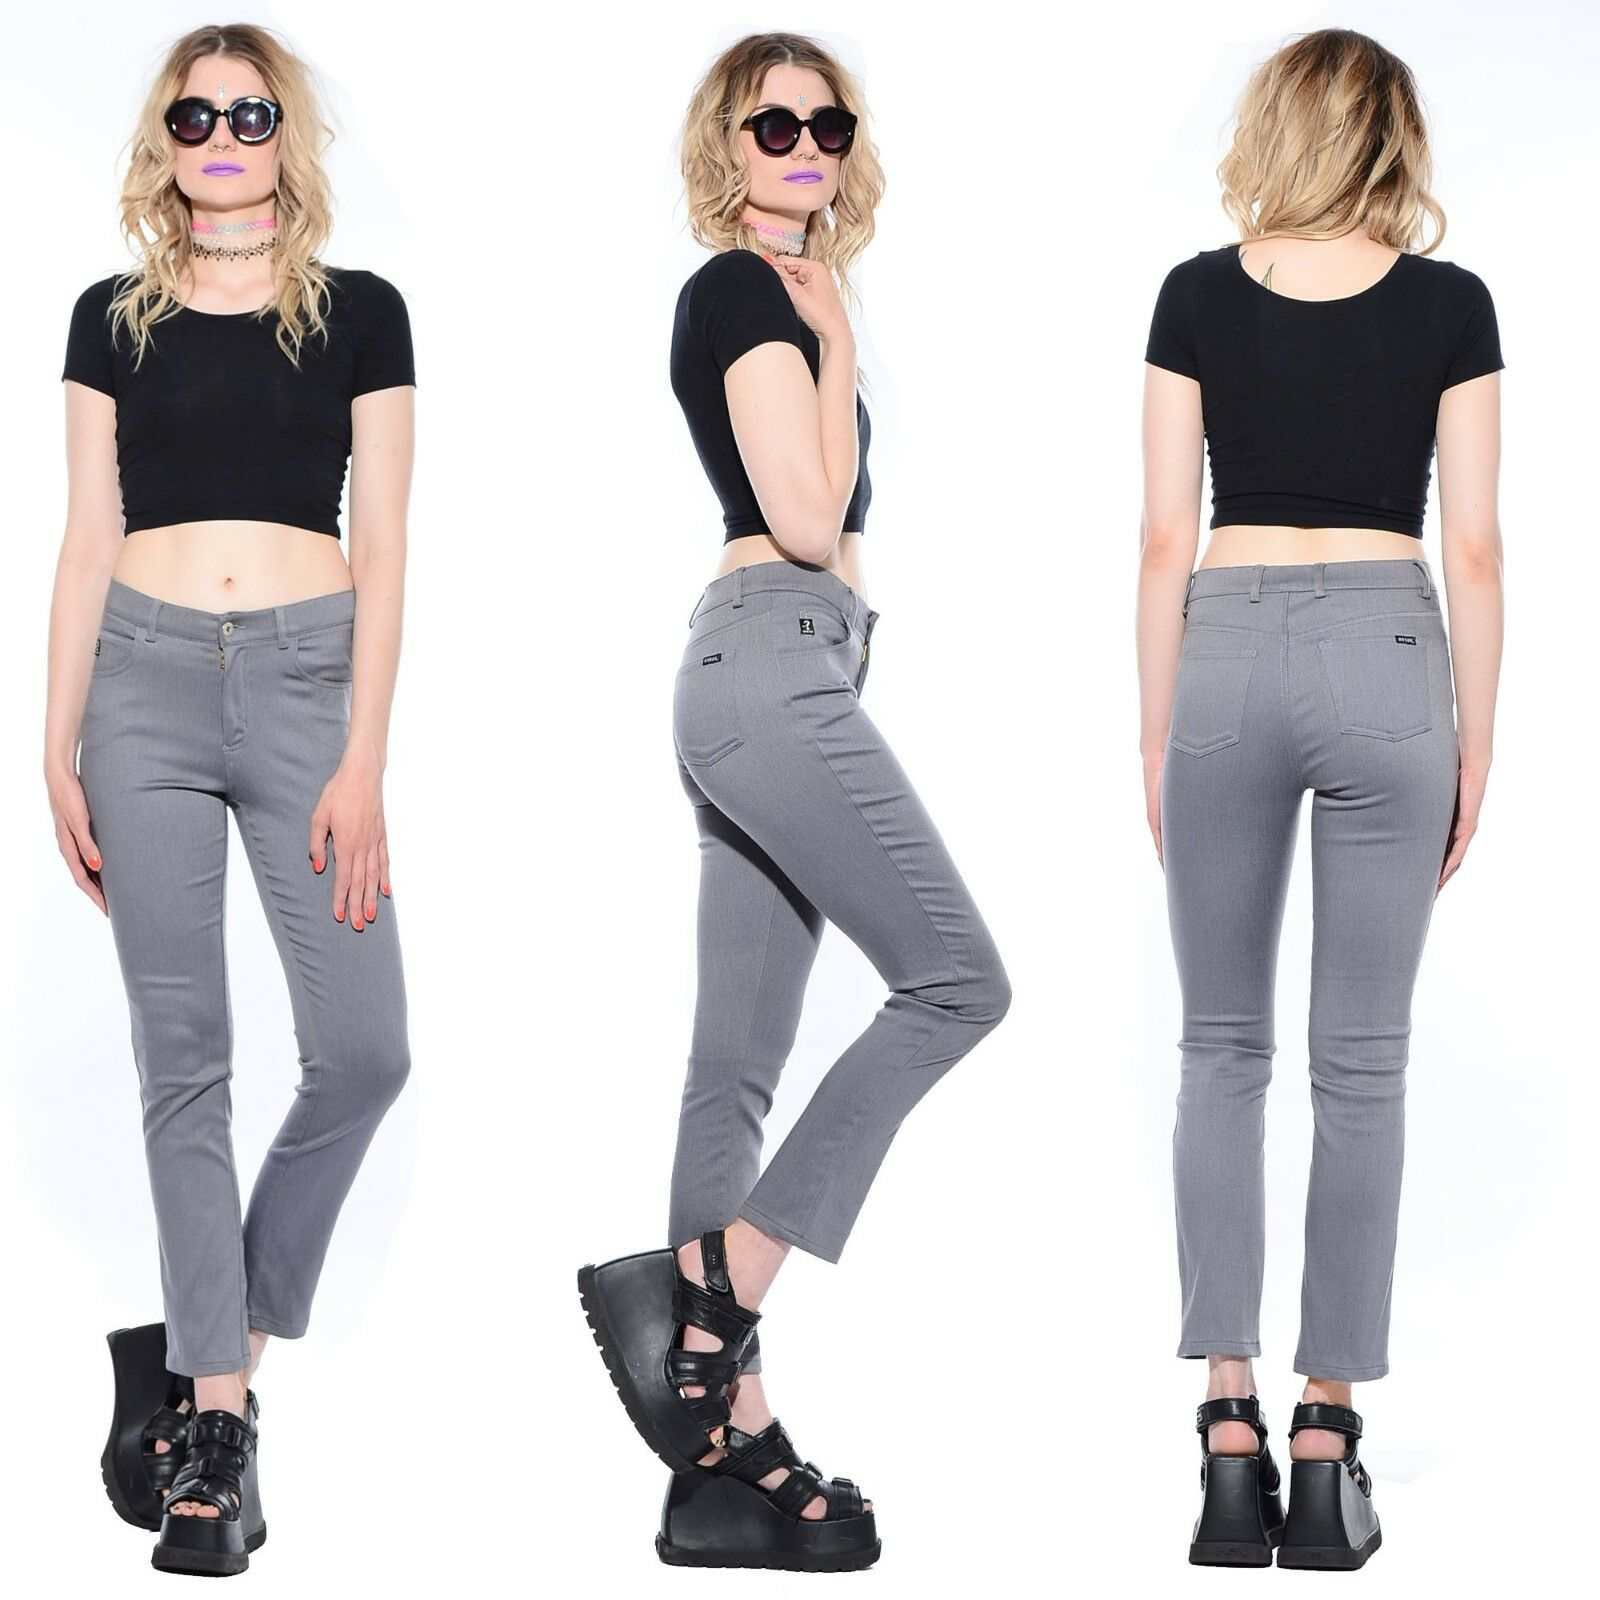 Vtg 90s GUESS JEANS Stretch HIGH WAIST Slim Skinny Fit Taperot Leg Disco Pants M